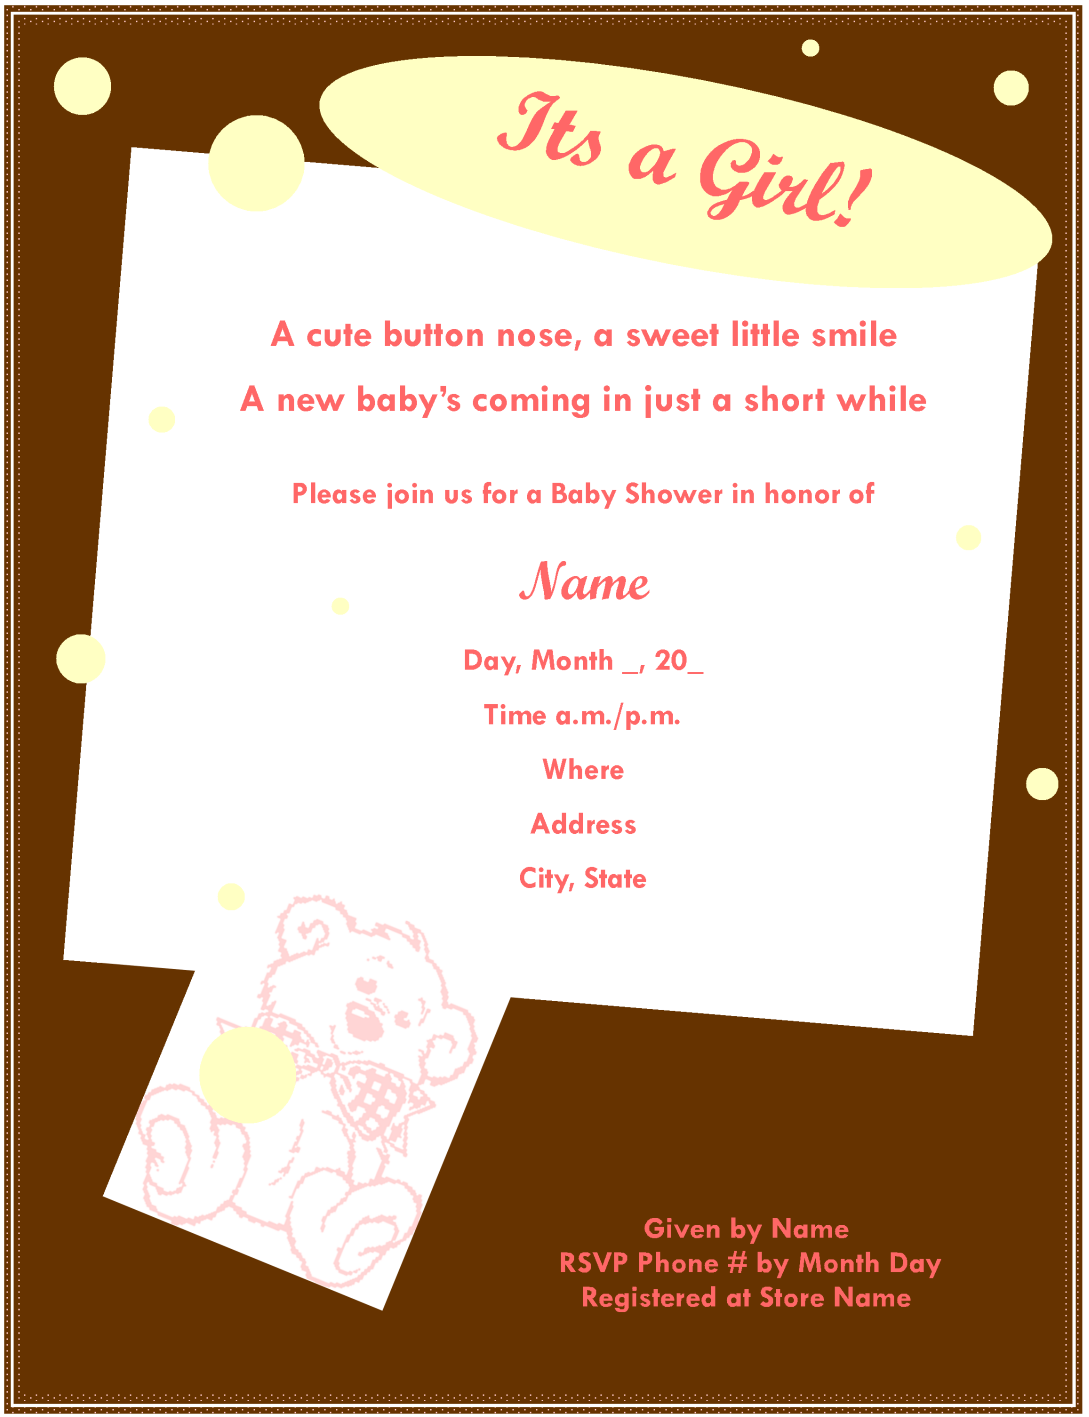 Baby Shower Invitation For Girl Template